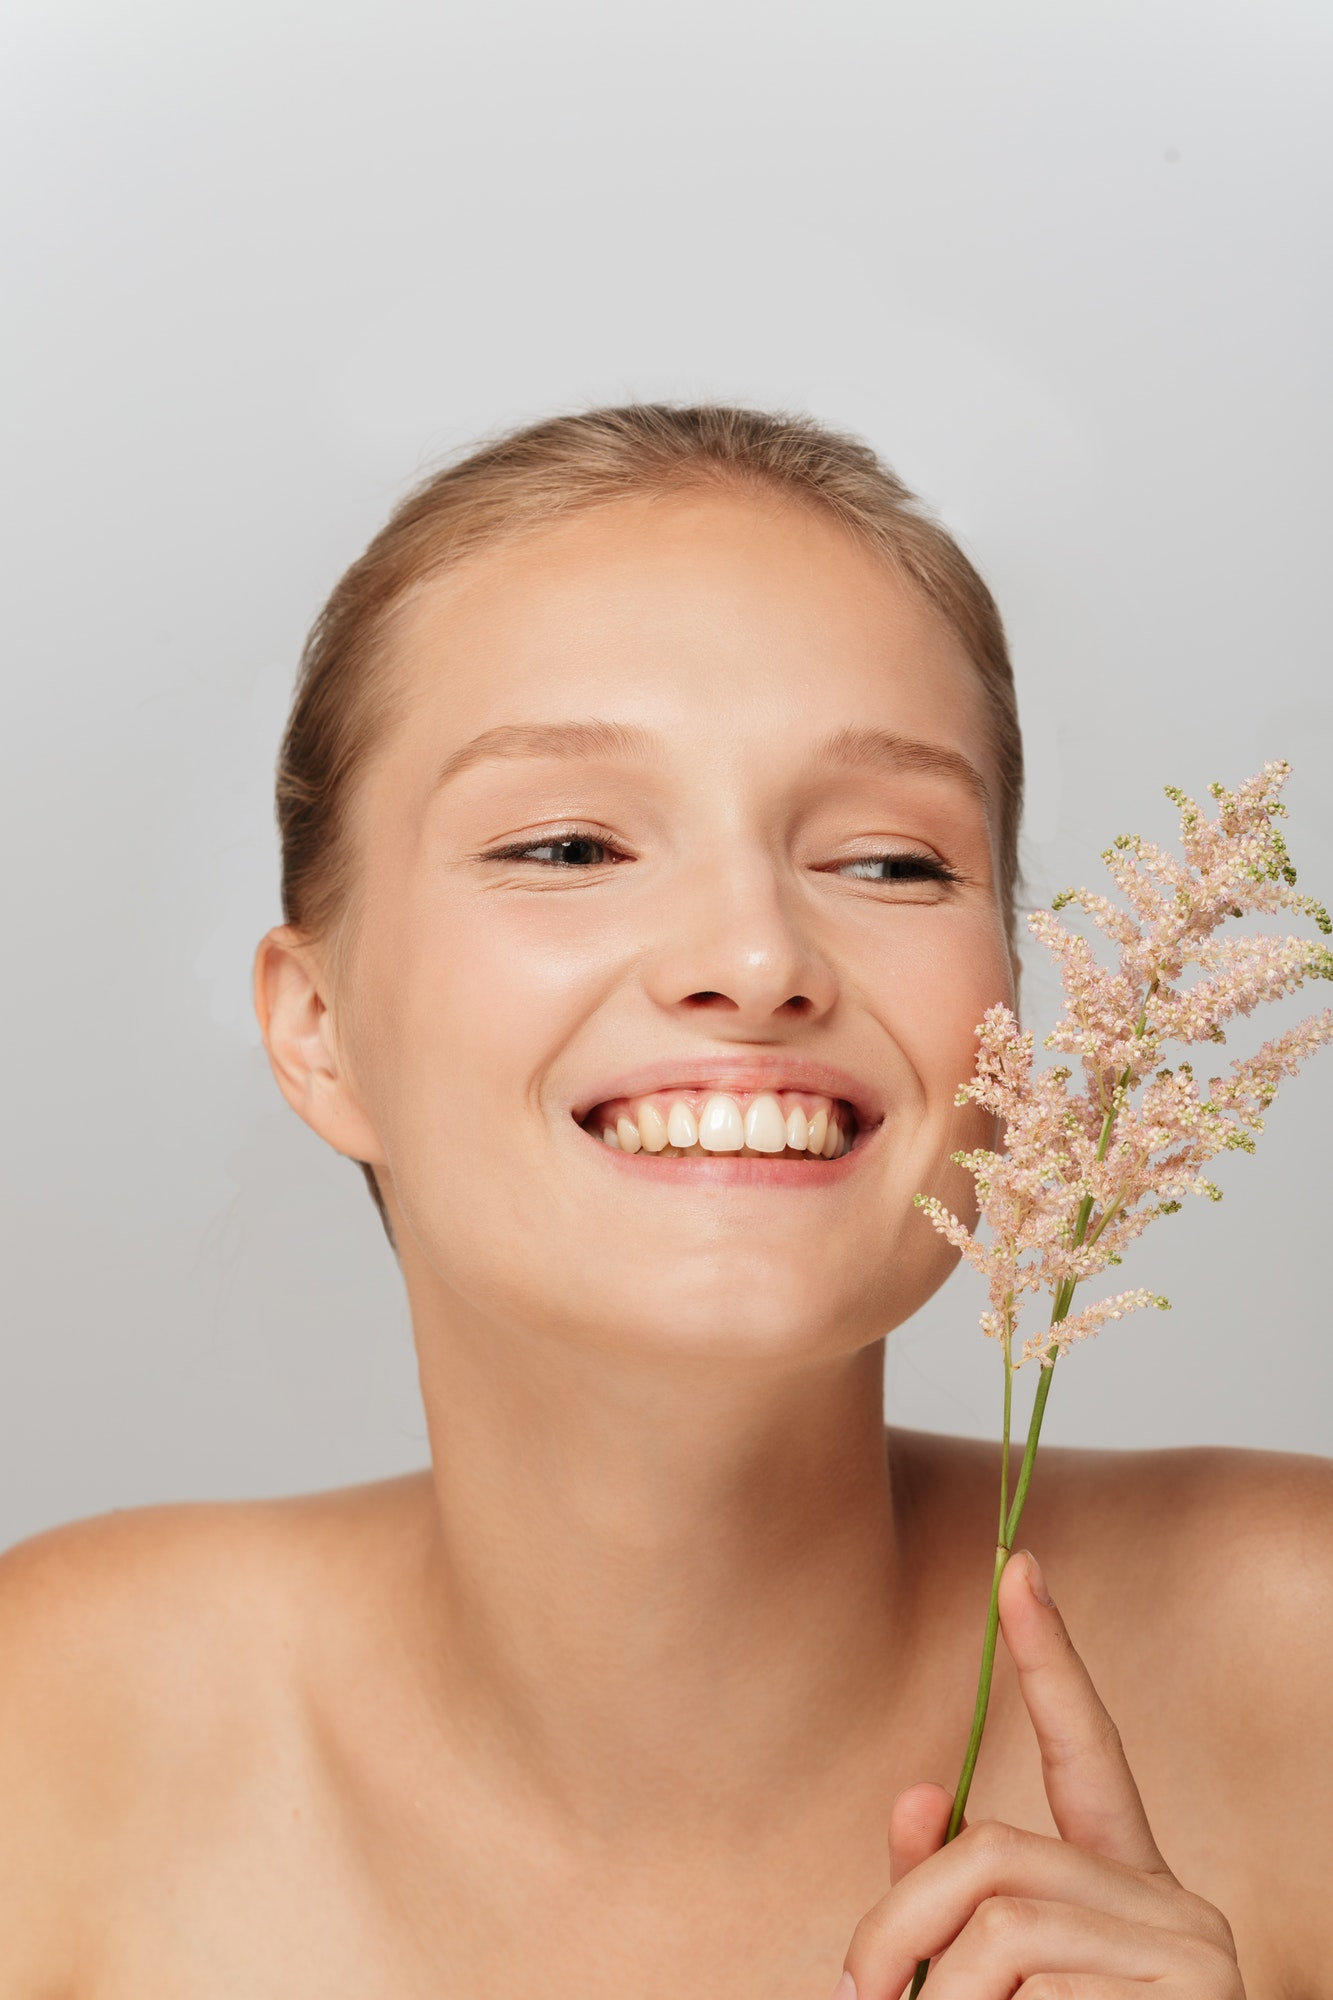 Portrait of young pretty smiling woman without makeup holding be